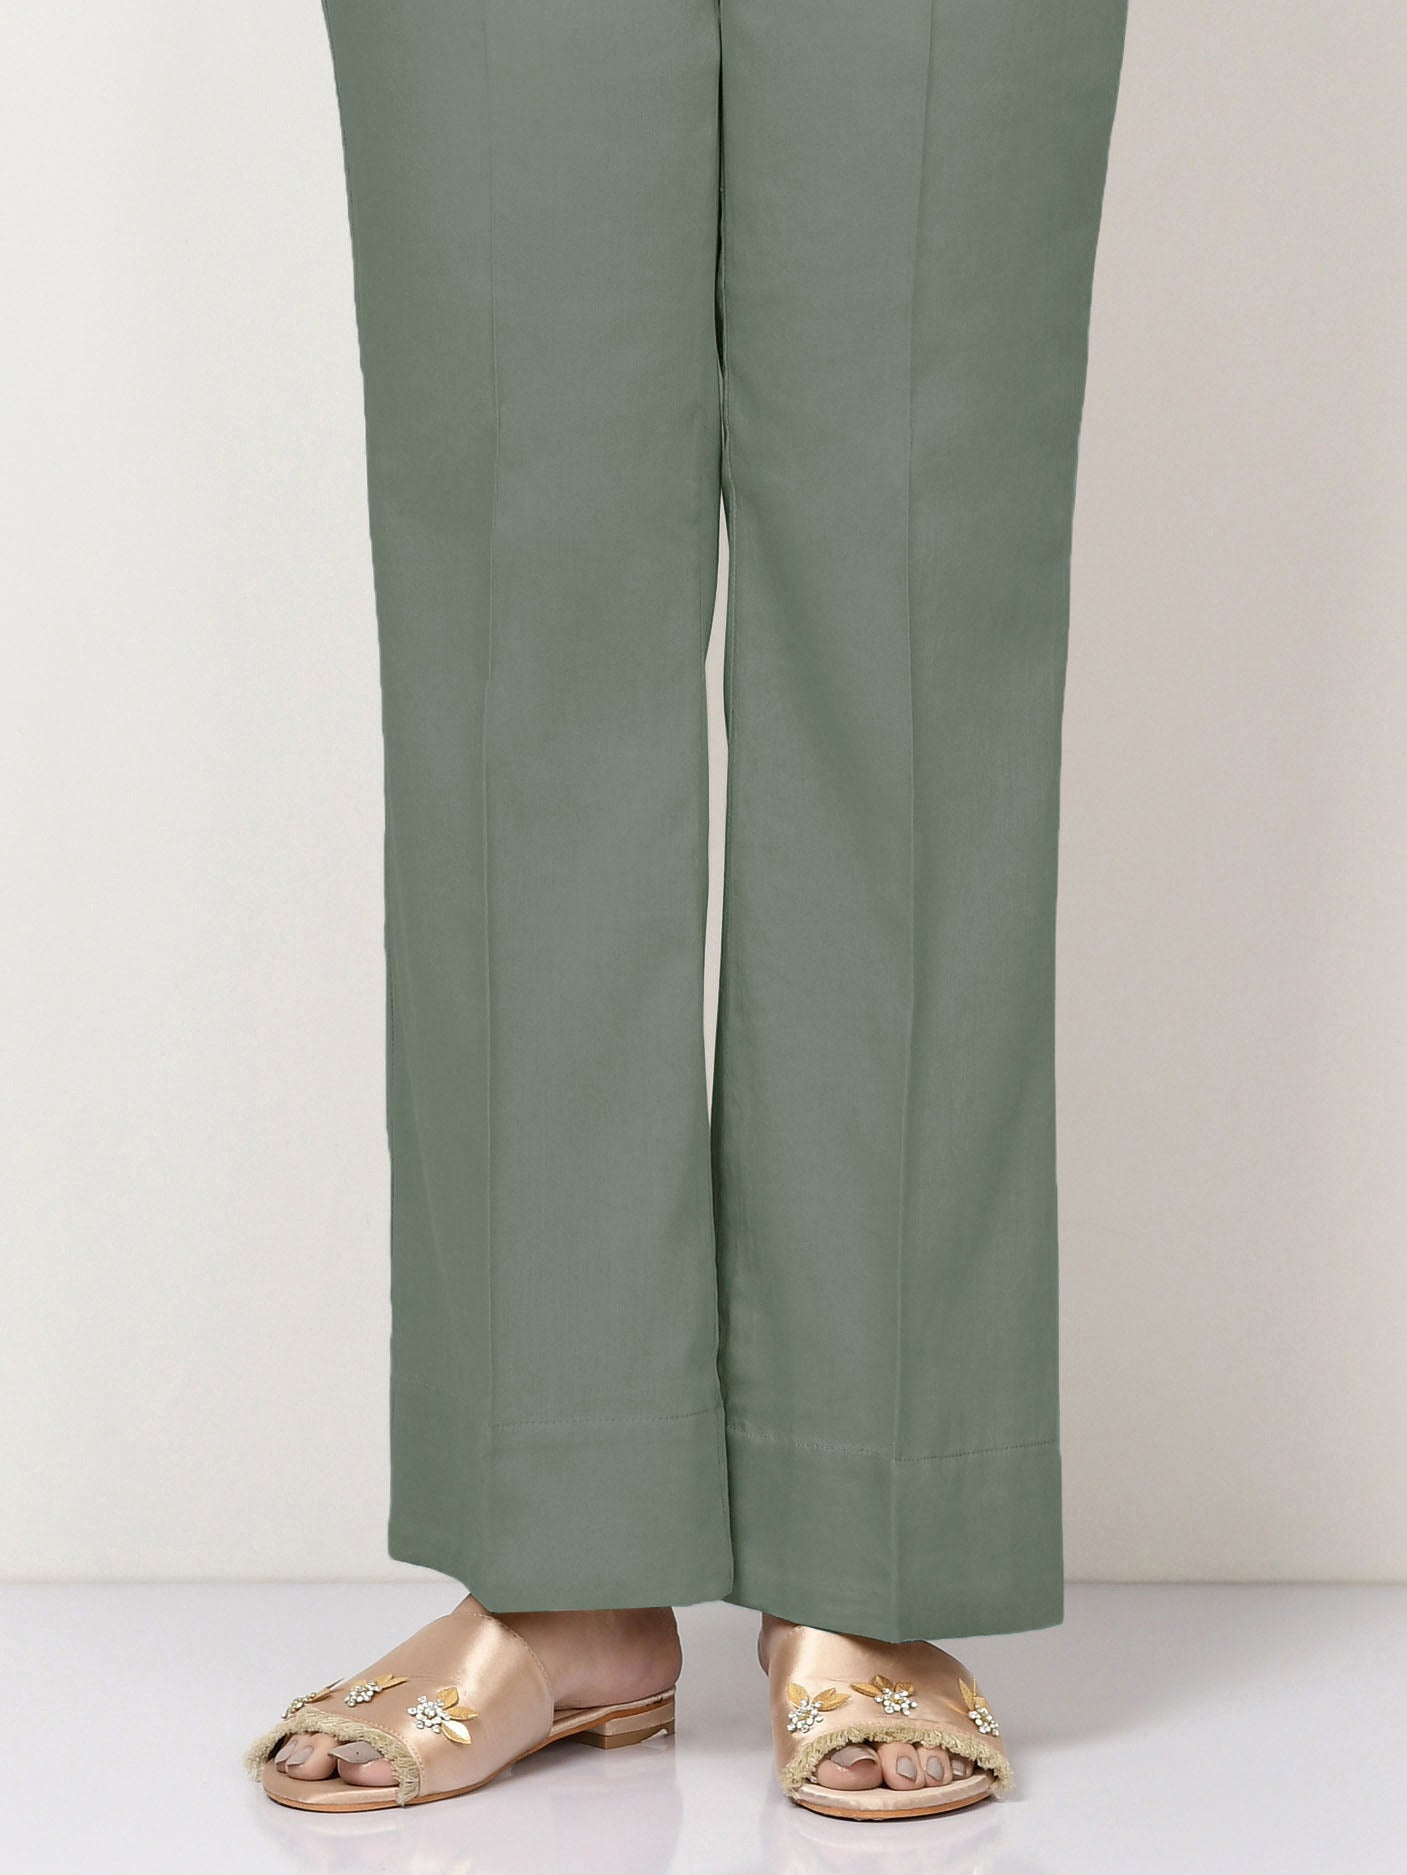 Unstitched Cambric Trouser - Tea Green